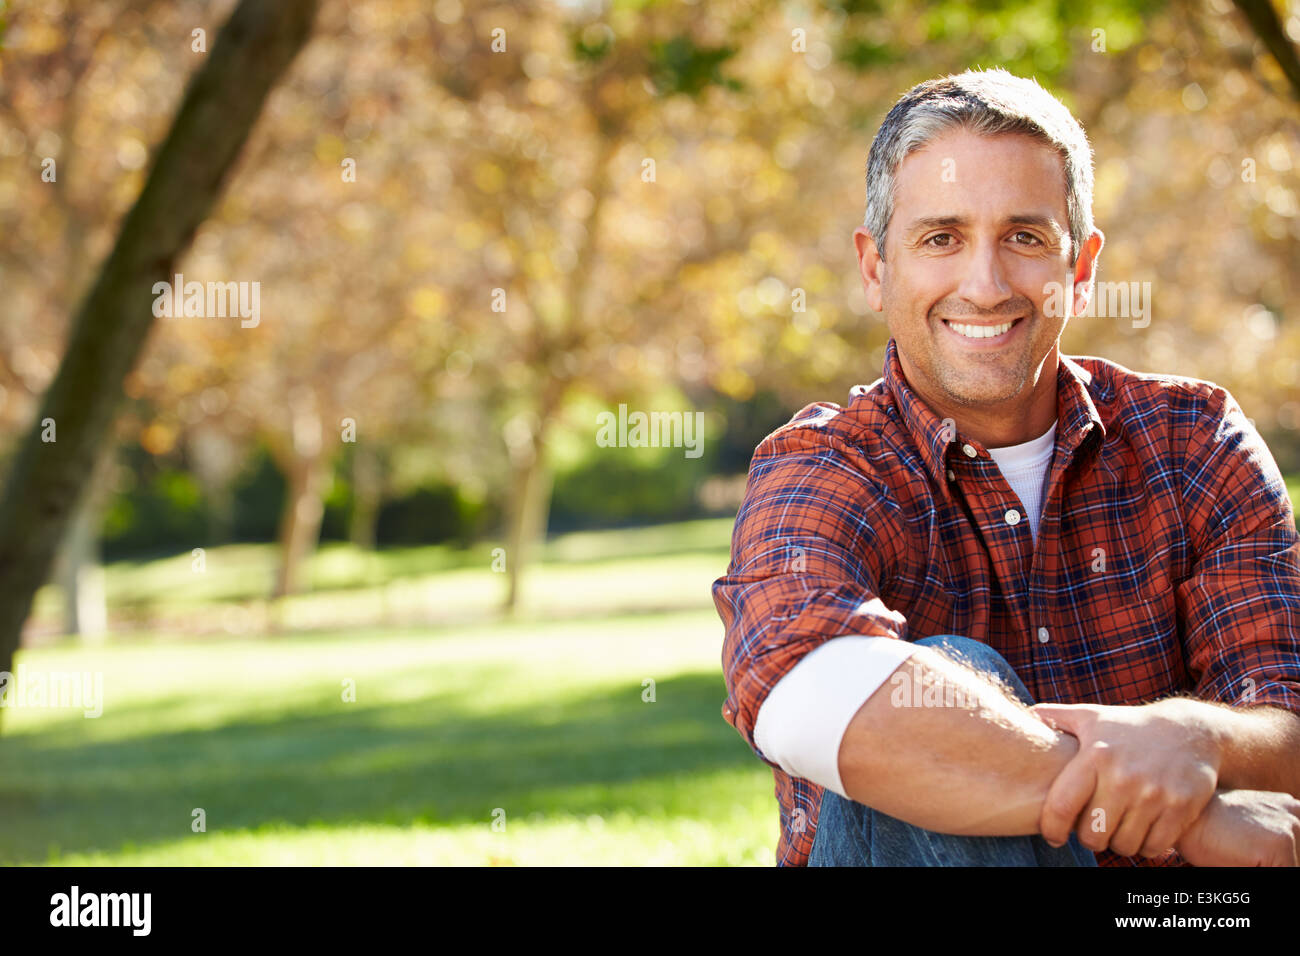 Portrait Of Hispanic Man In Countryside - Stock Image